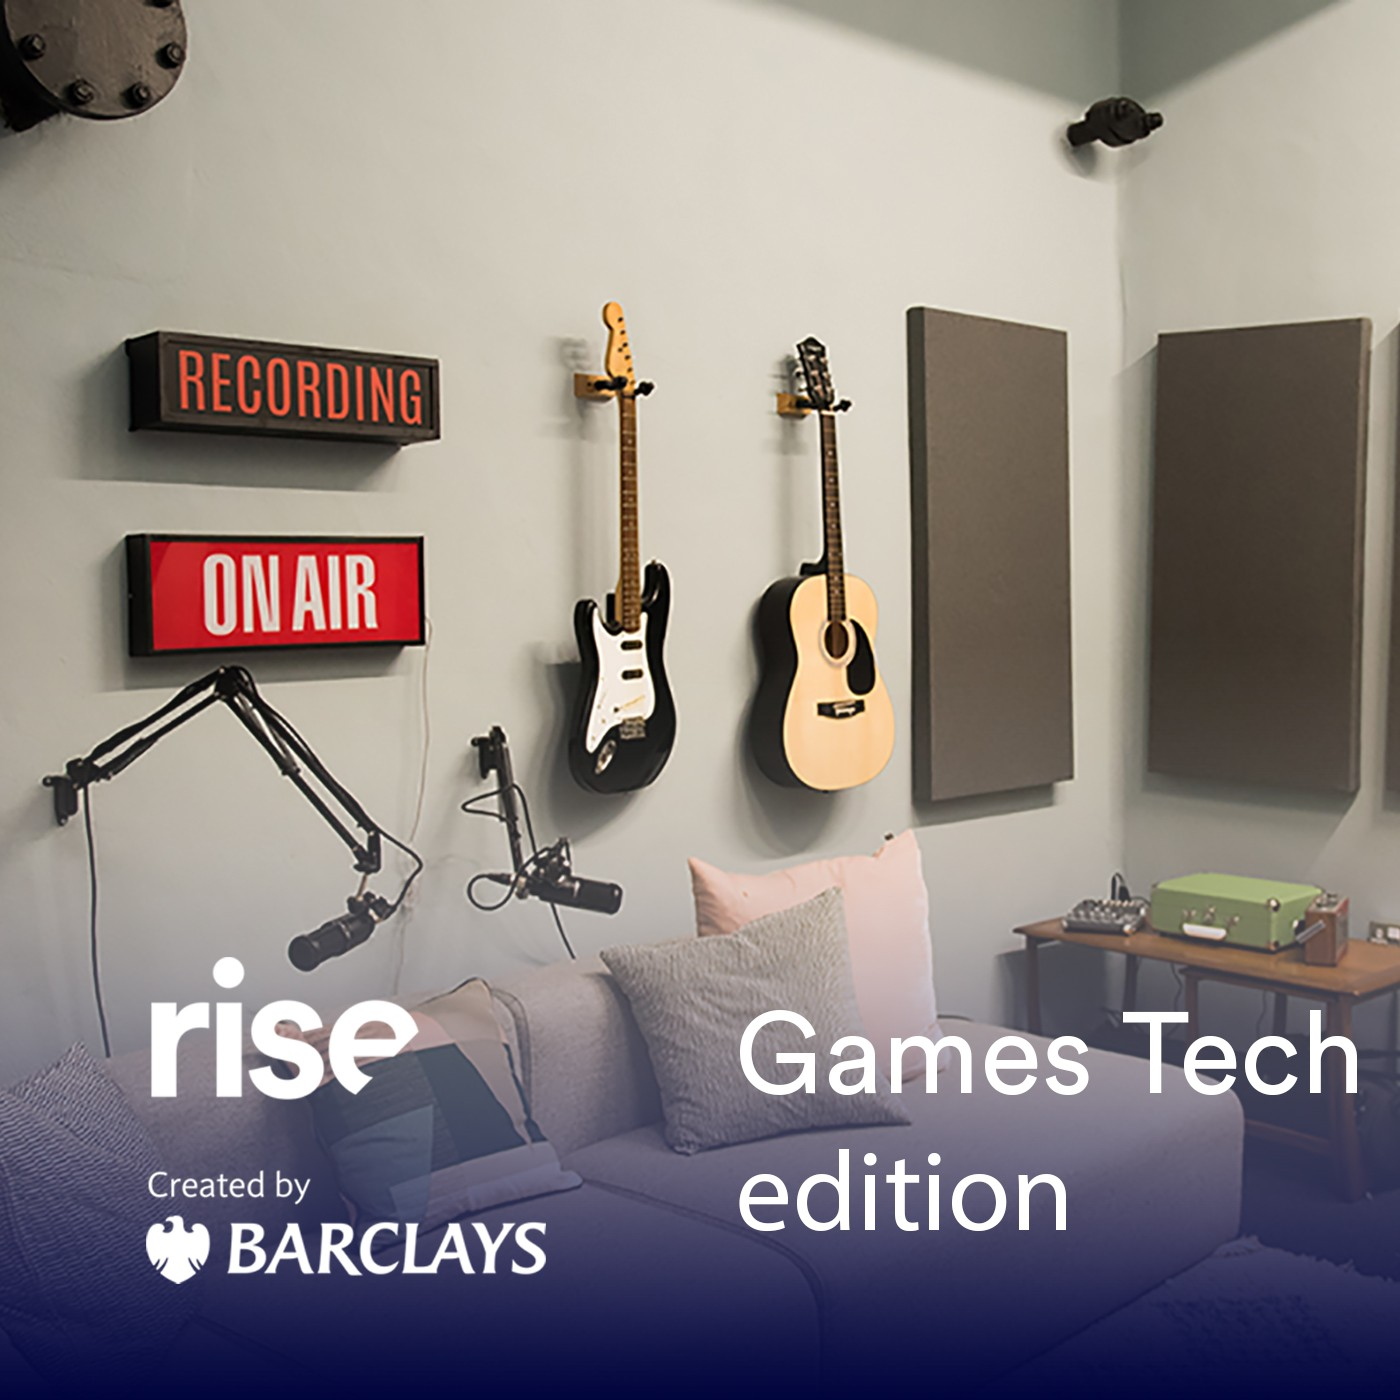 Rise FinTech Podcast, games tech edition